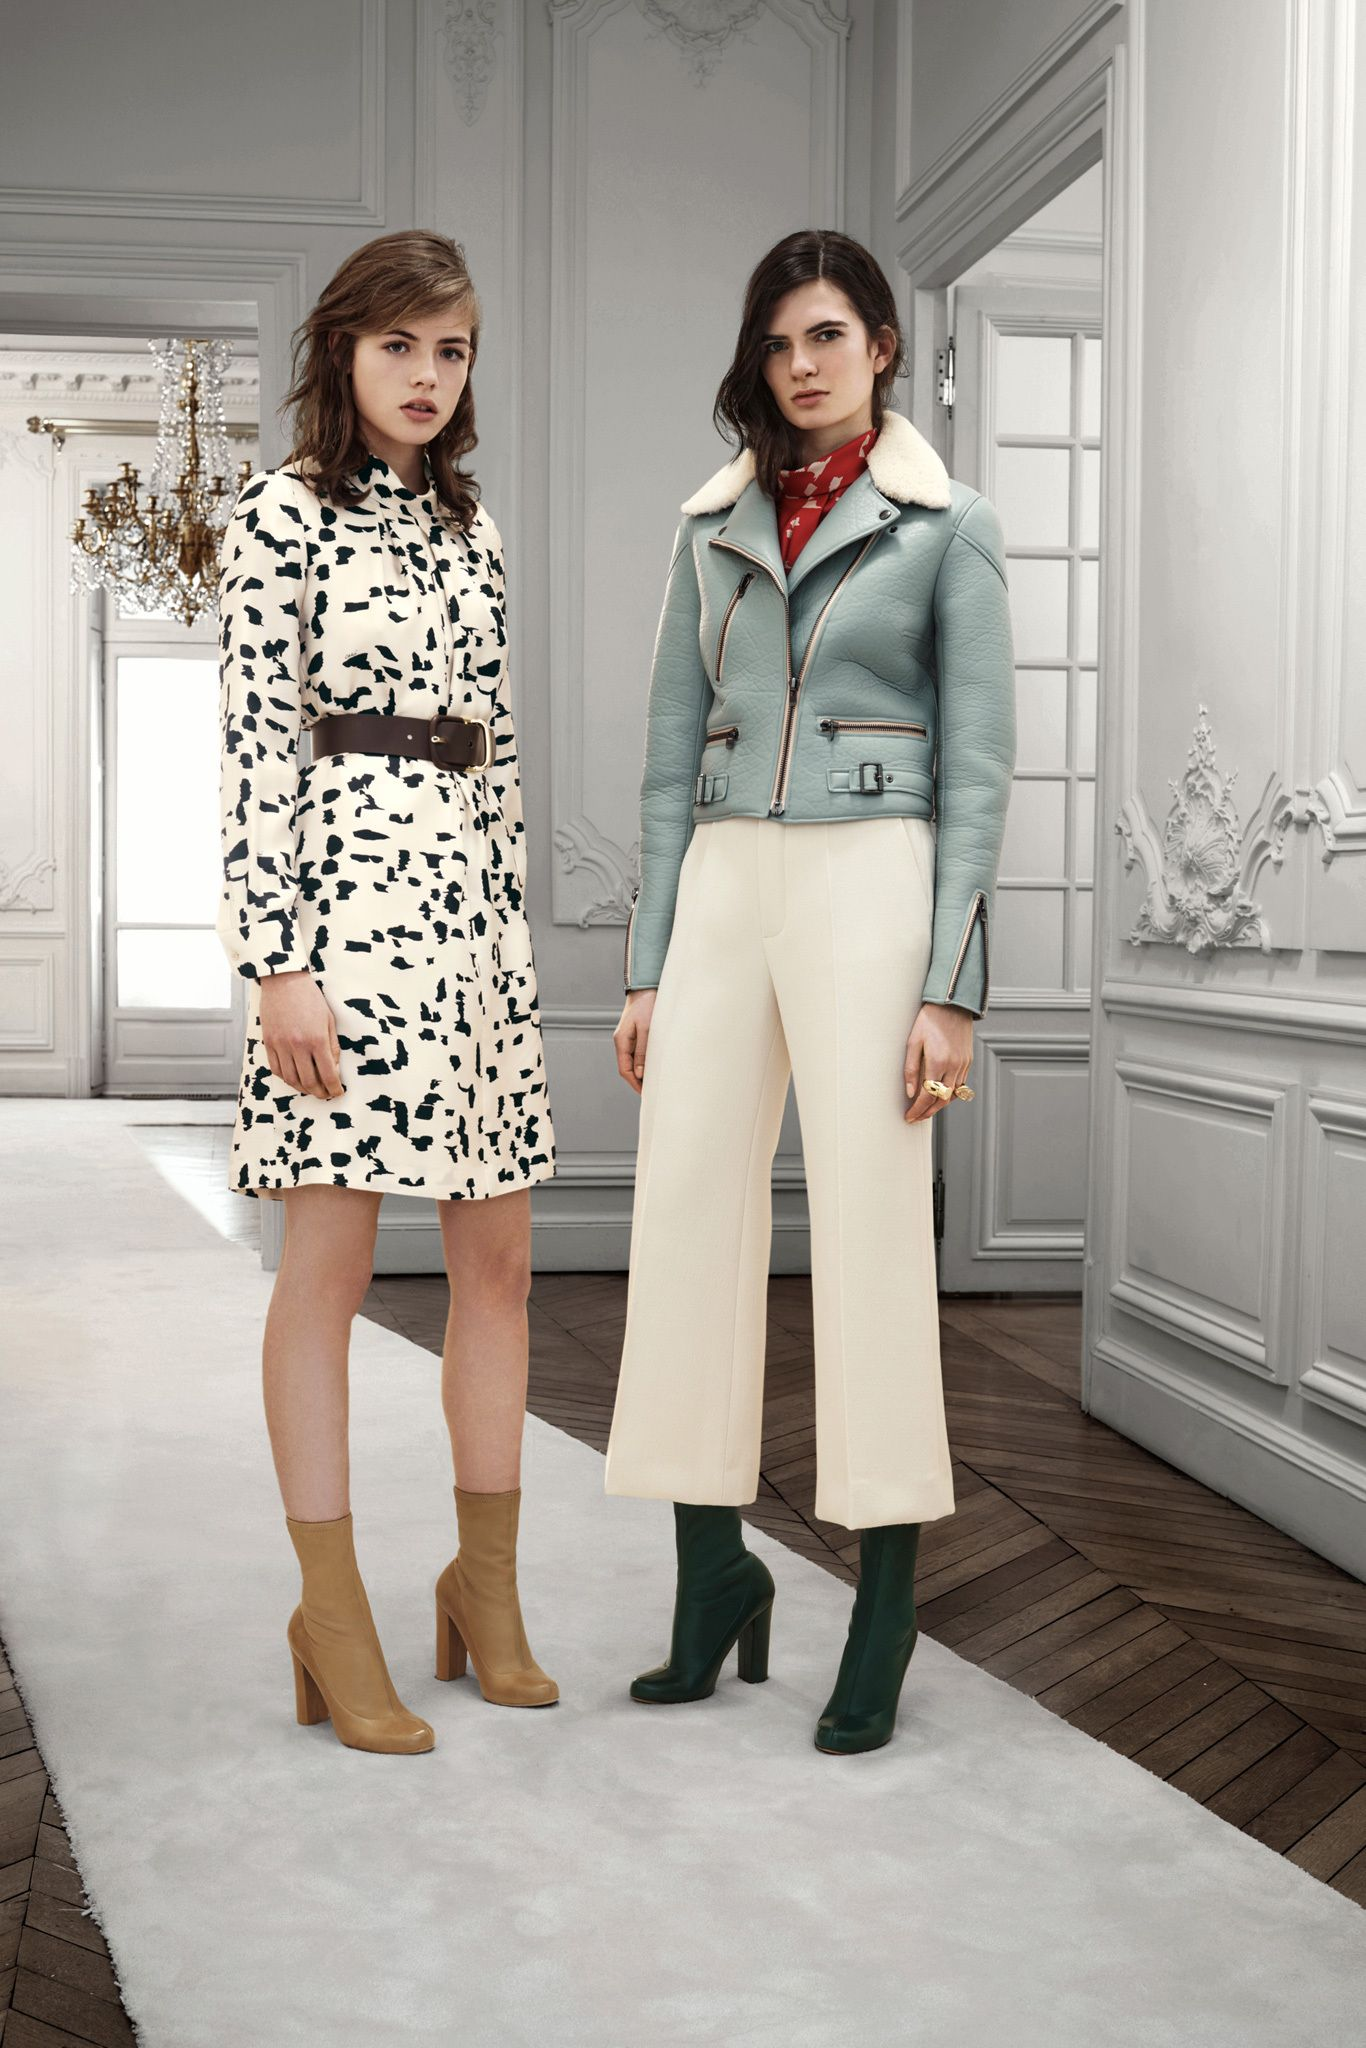 http://www.style.com/slideshows/fashion-shows/pre-fall-2013/chloe/collection